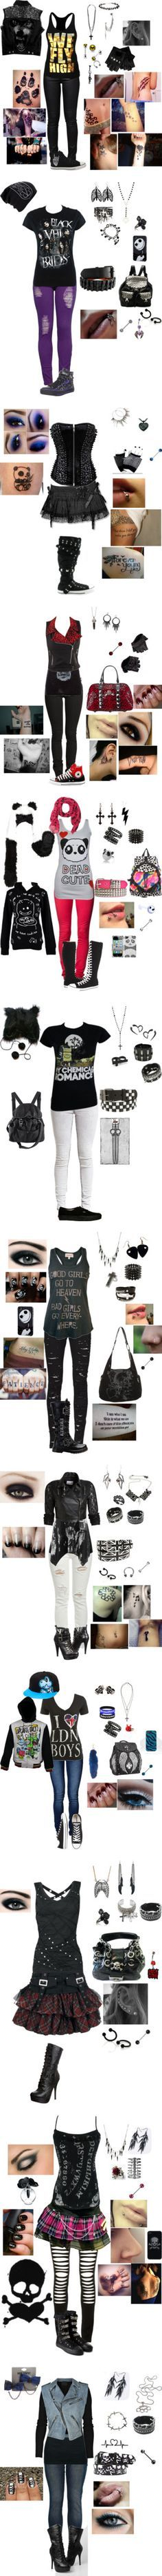 """""Emo"" clothes part 5 :)"" by foreverbroken ❤ liked on Polyvore"